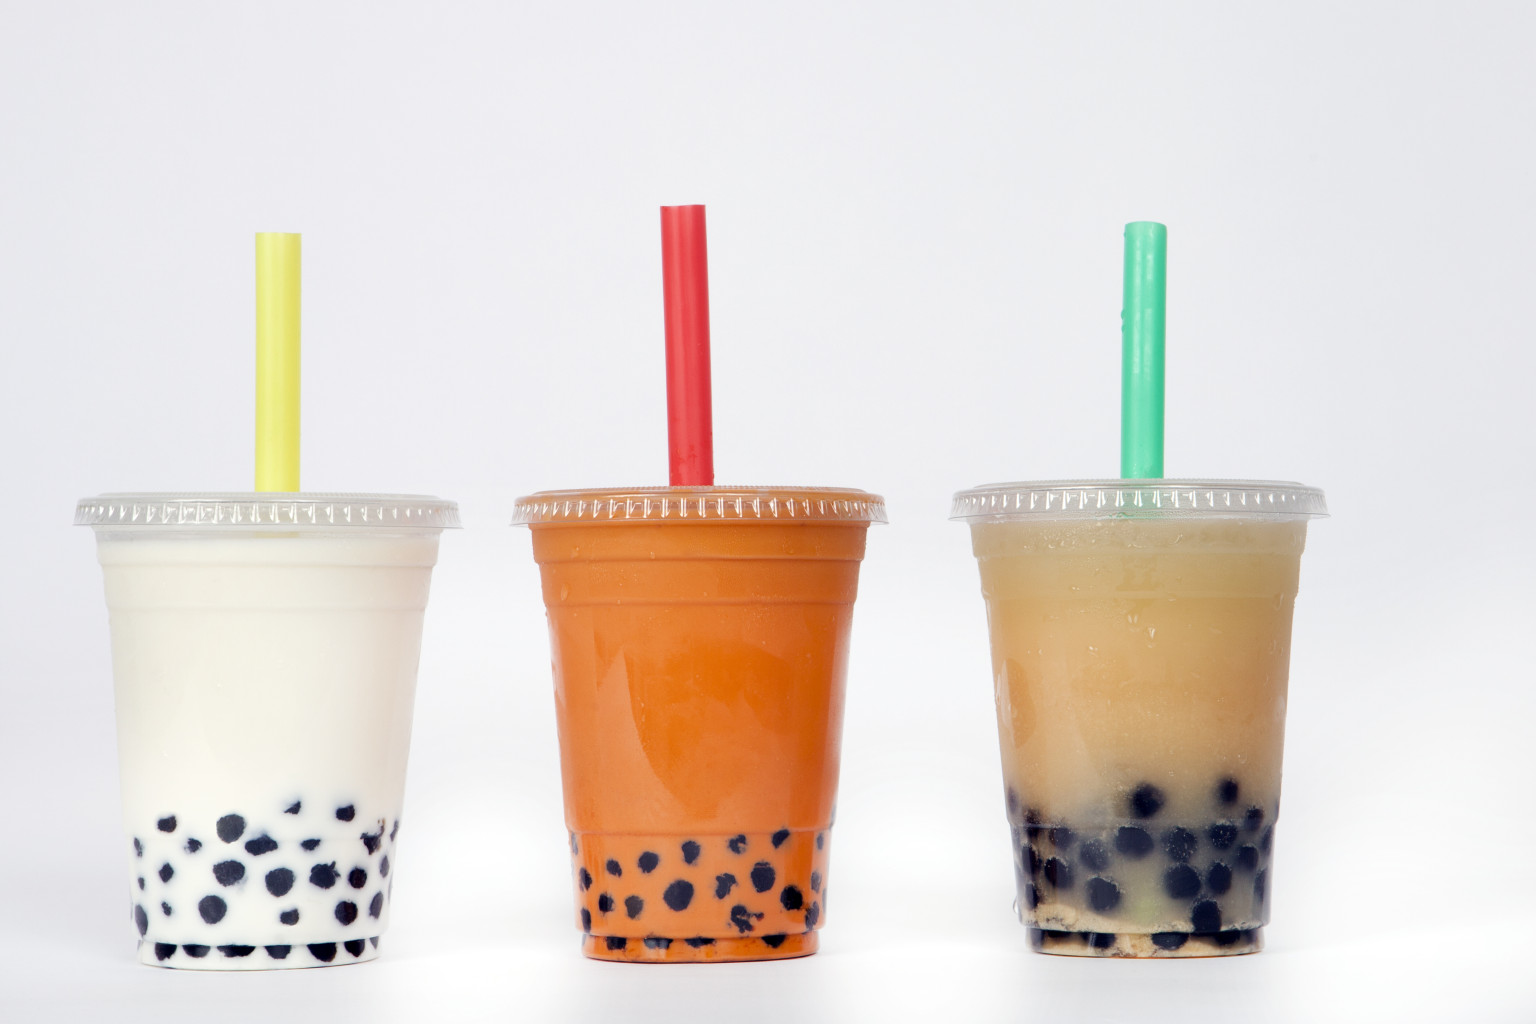 Largest Boba Tea In The World Kickstarter Campaign Wants To Raise $ ...